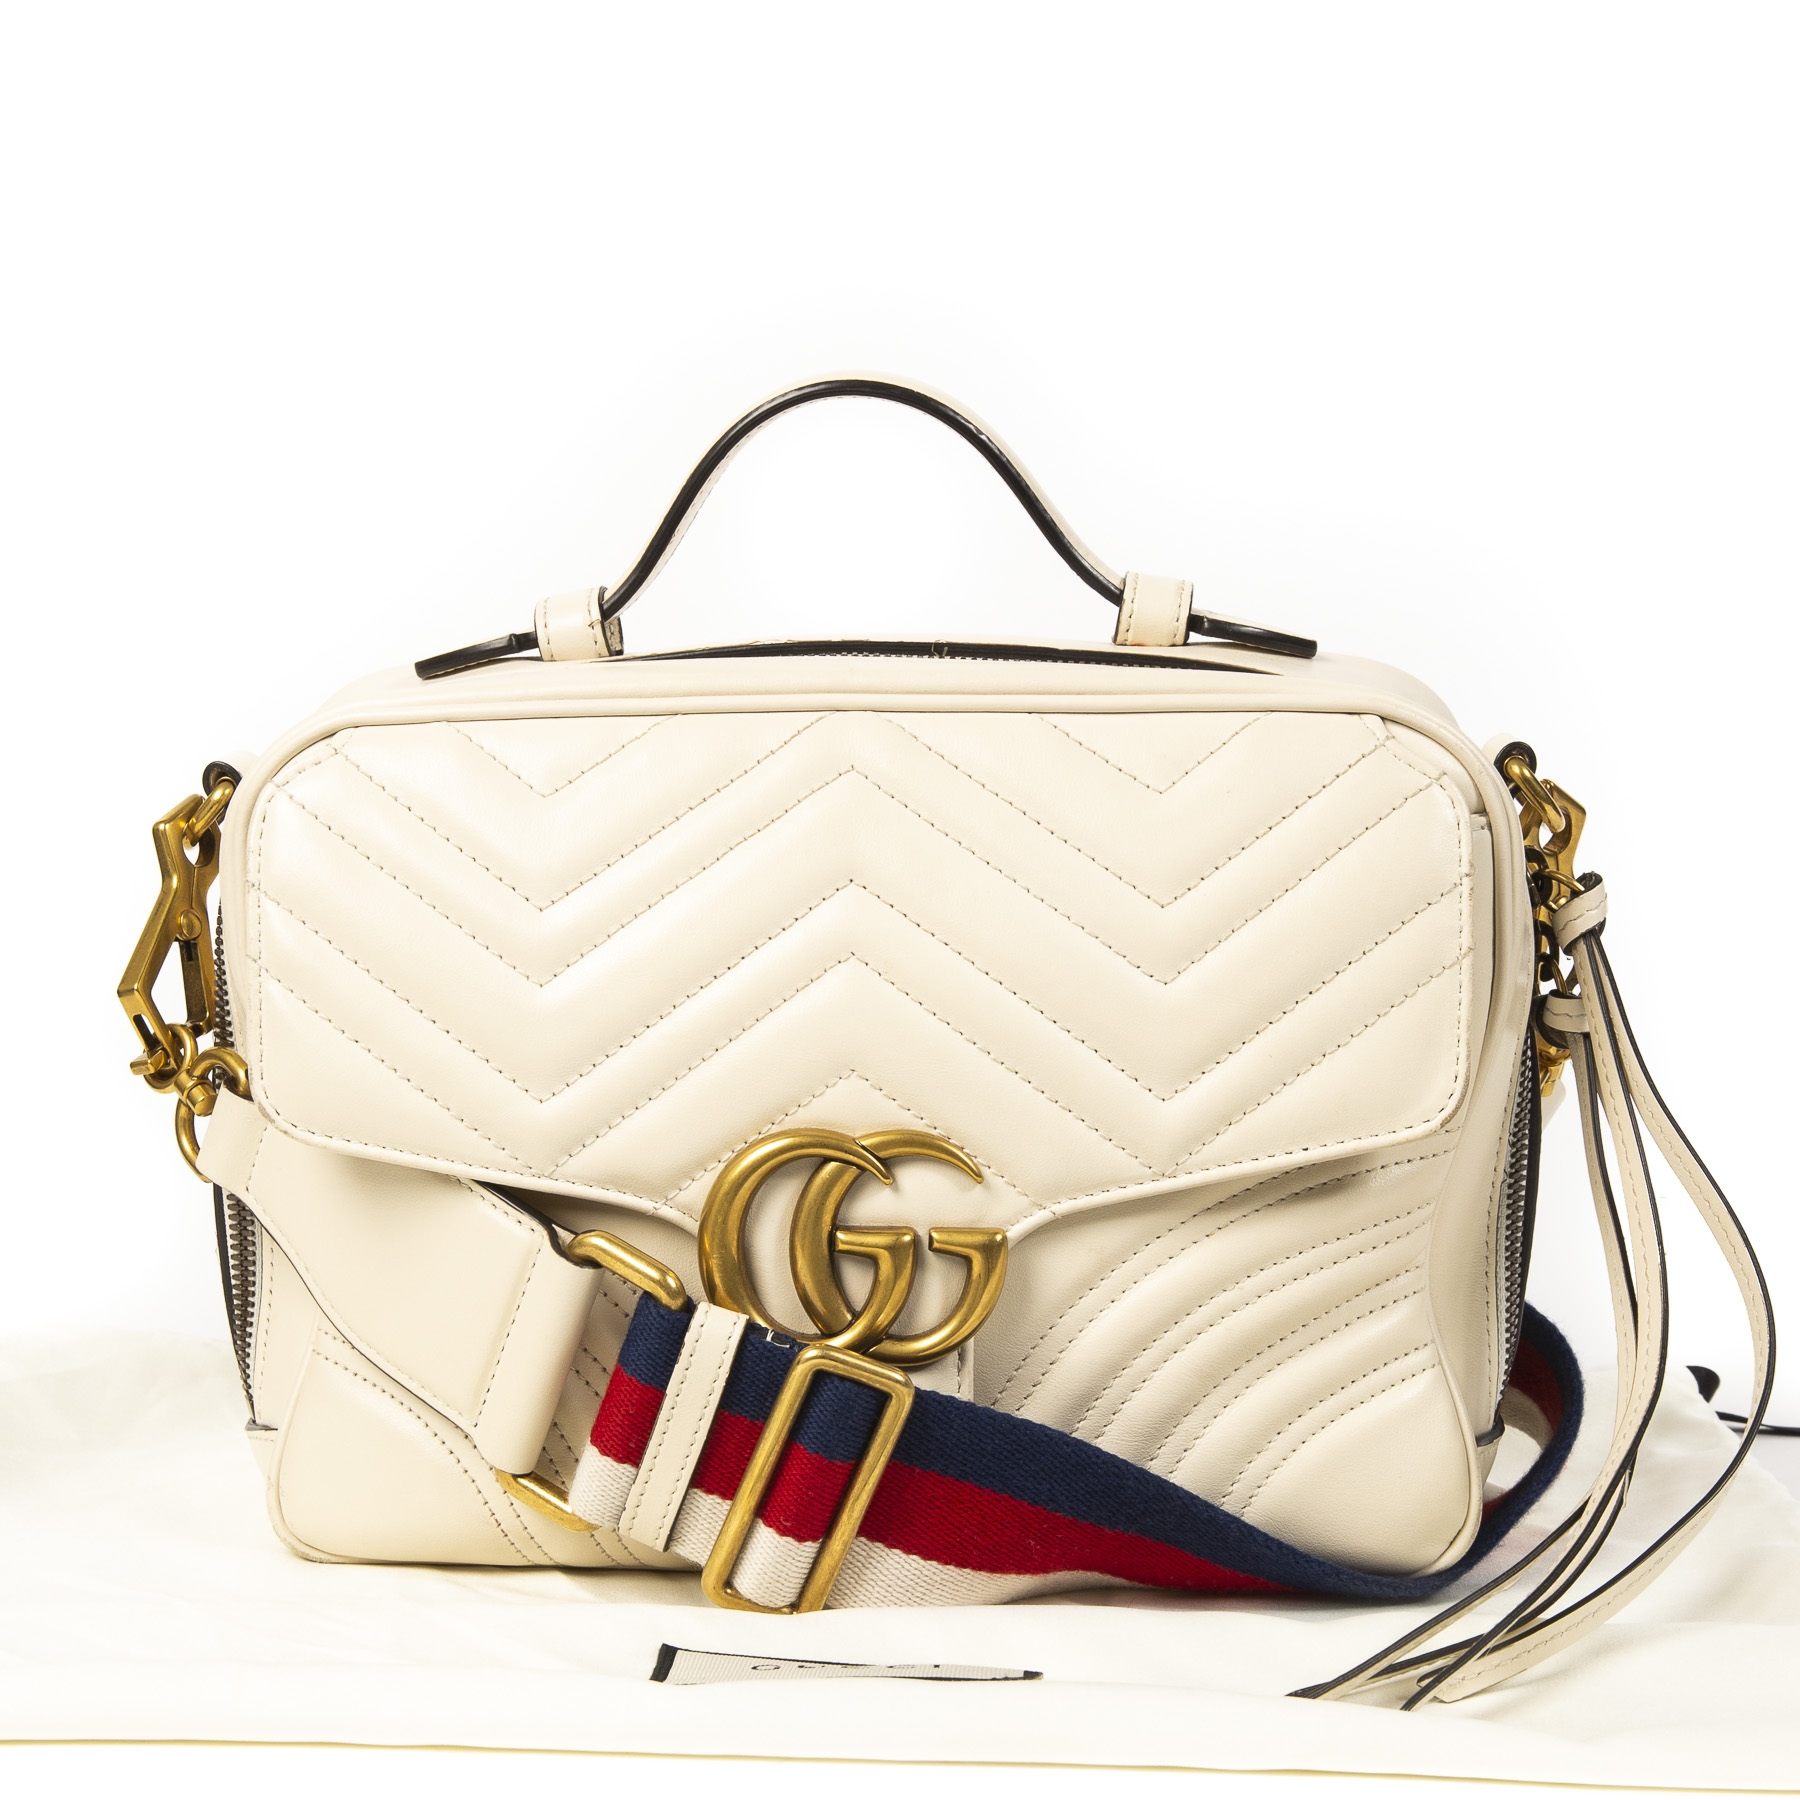 acheter en ligne seconde main Gucci GG Marmont Ivory Mini Top Handle Bag with Special Strap